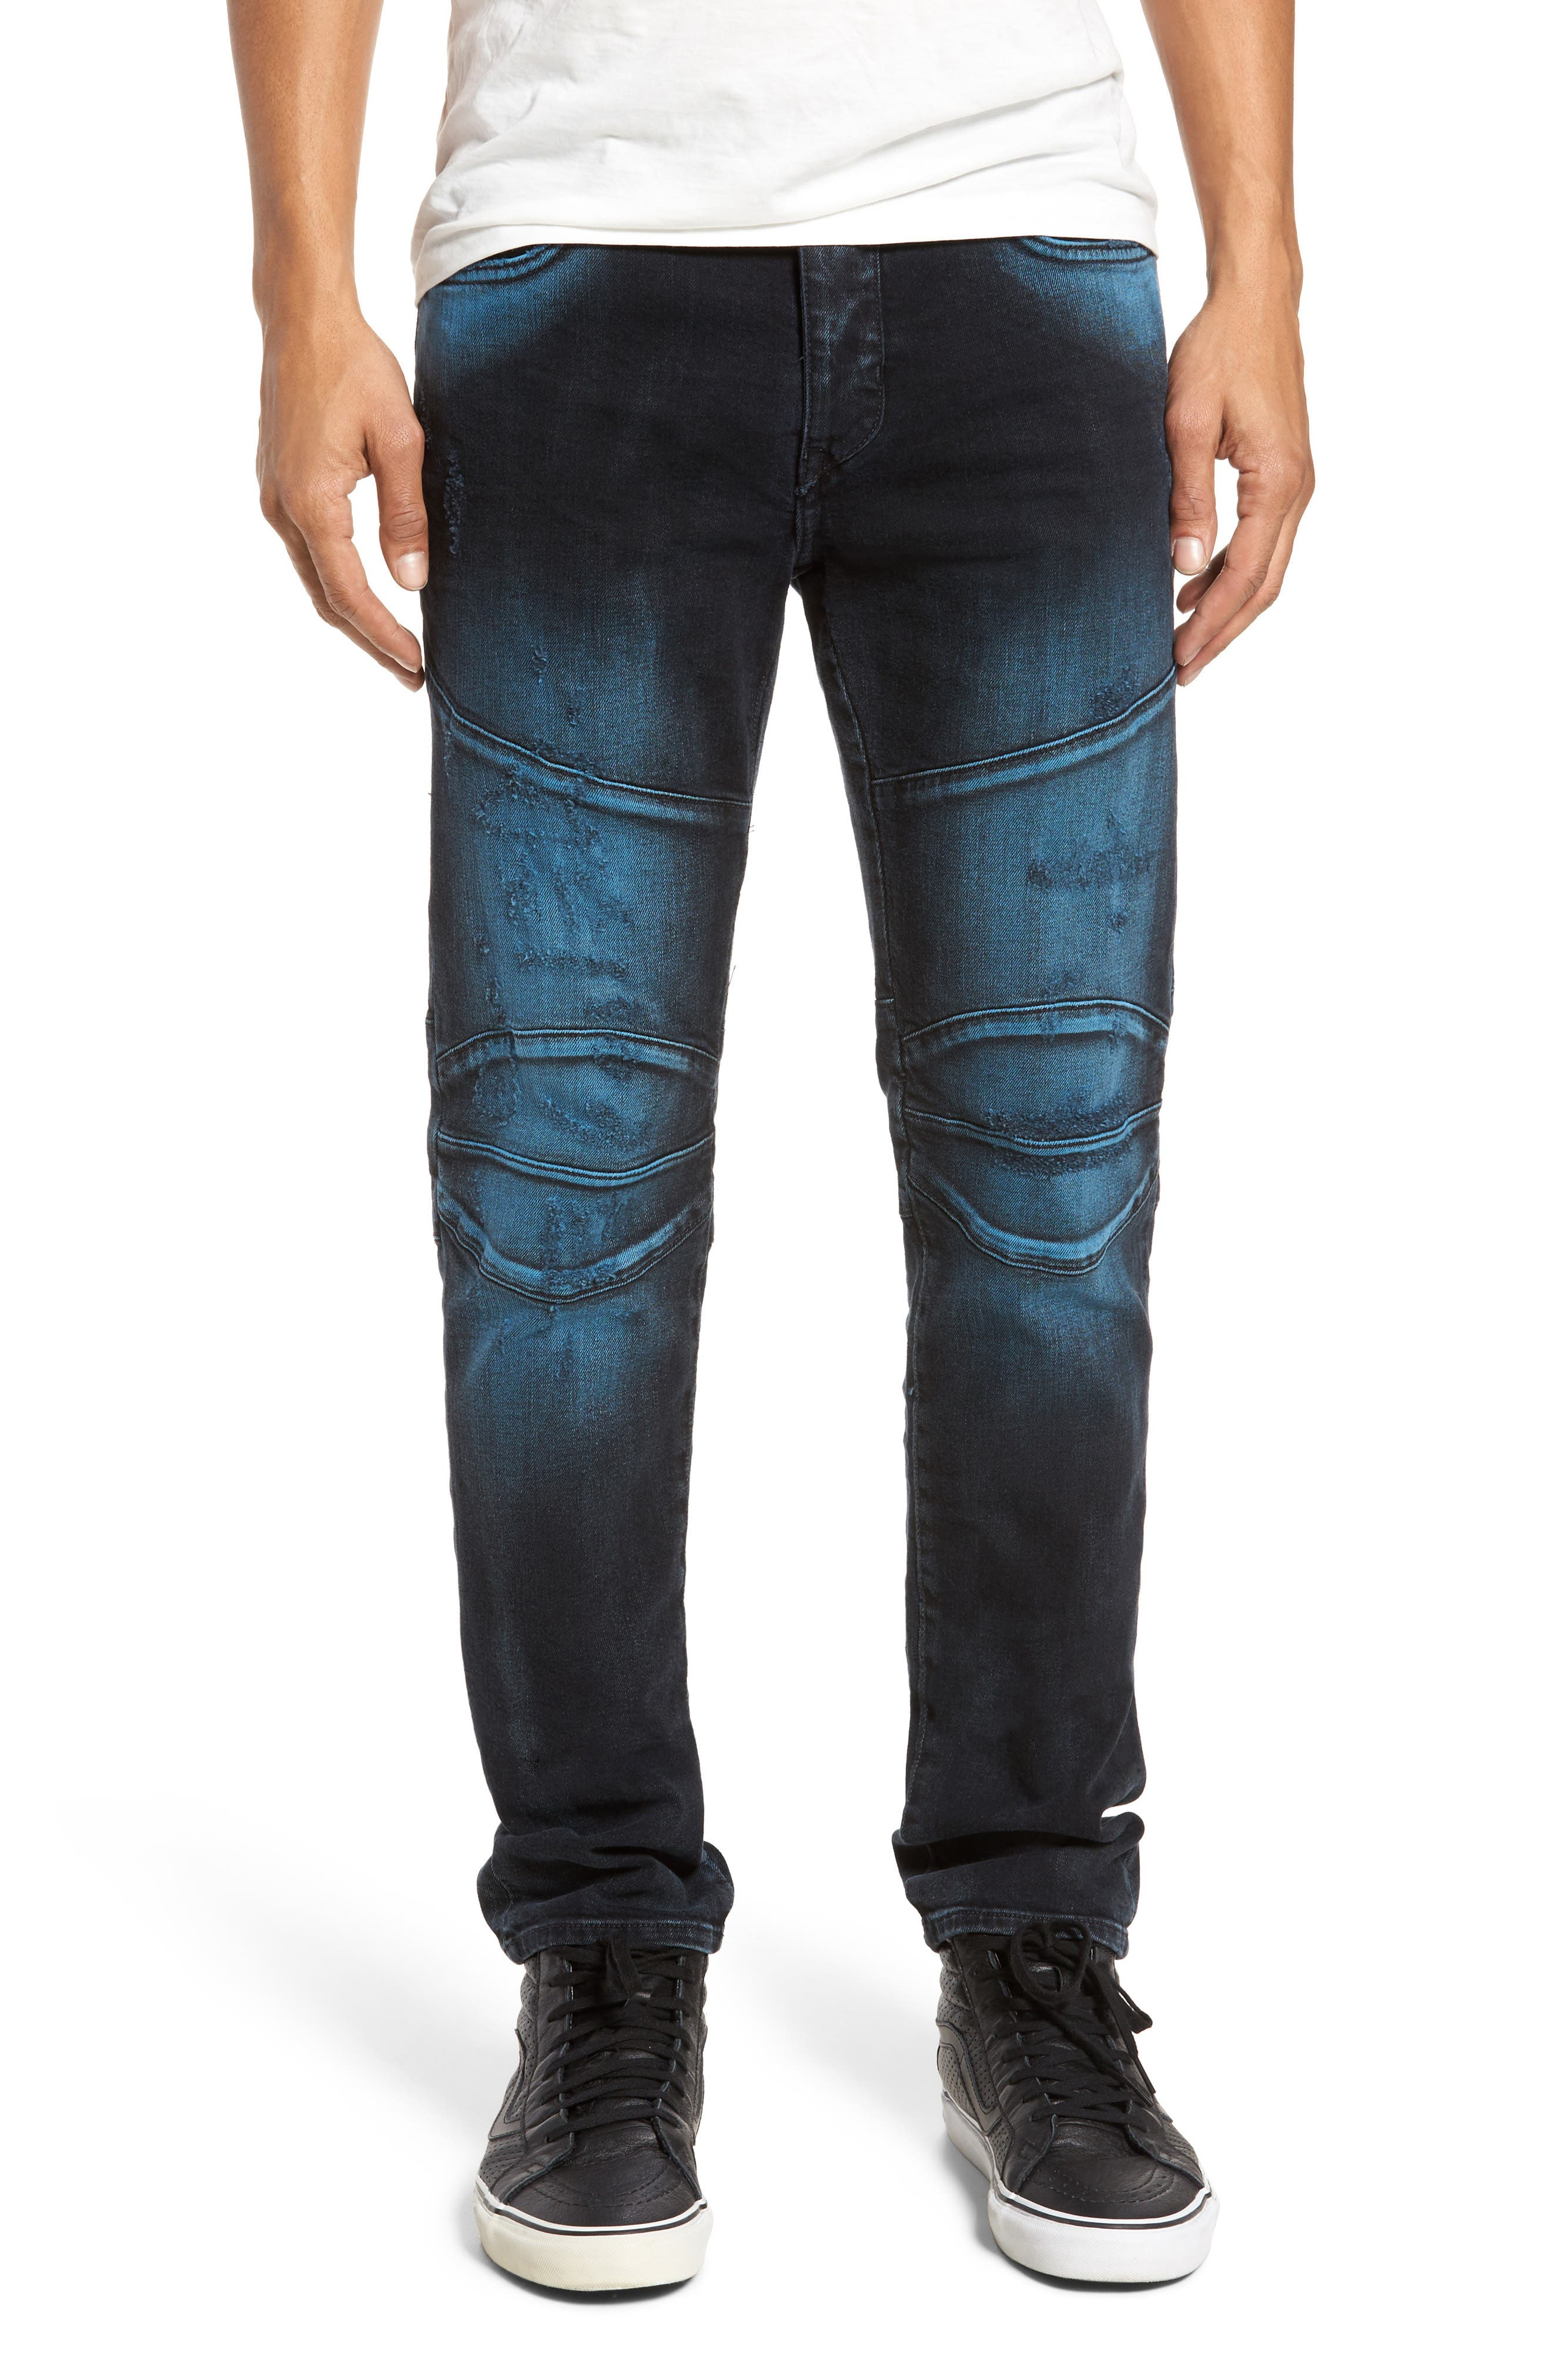 Rocco Skinny Fit Jeans,                             Main thumbnail 1, color,                             Blue Blaze